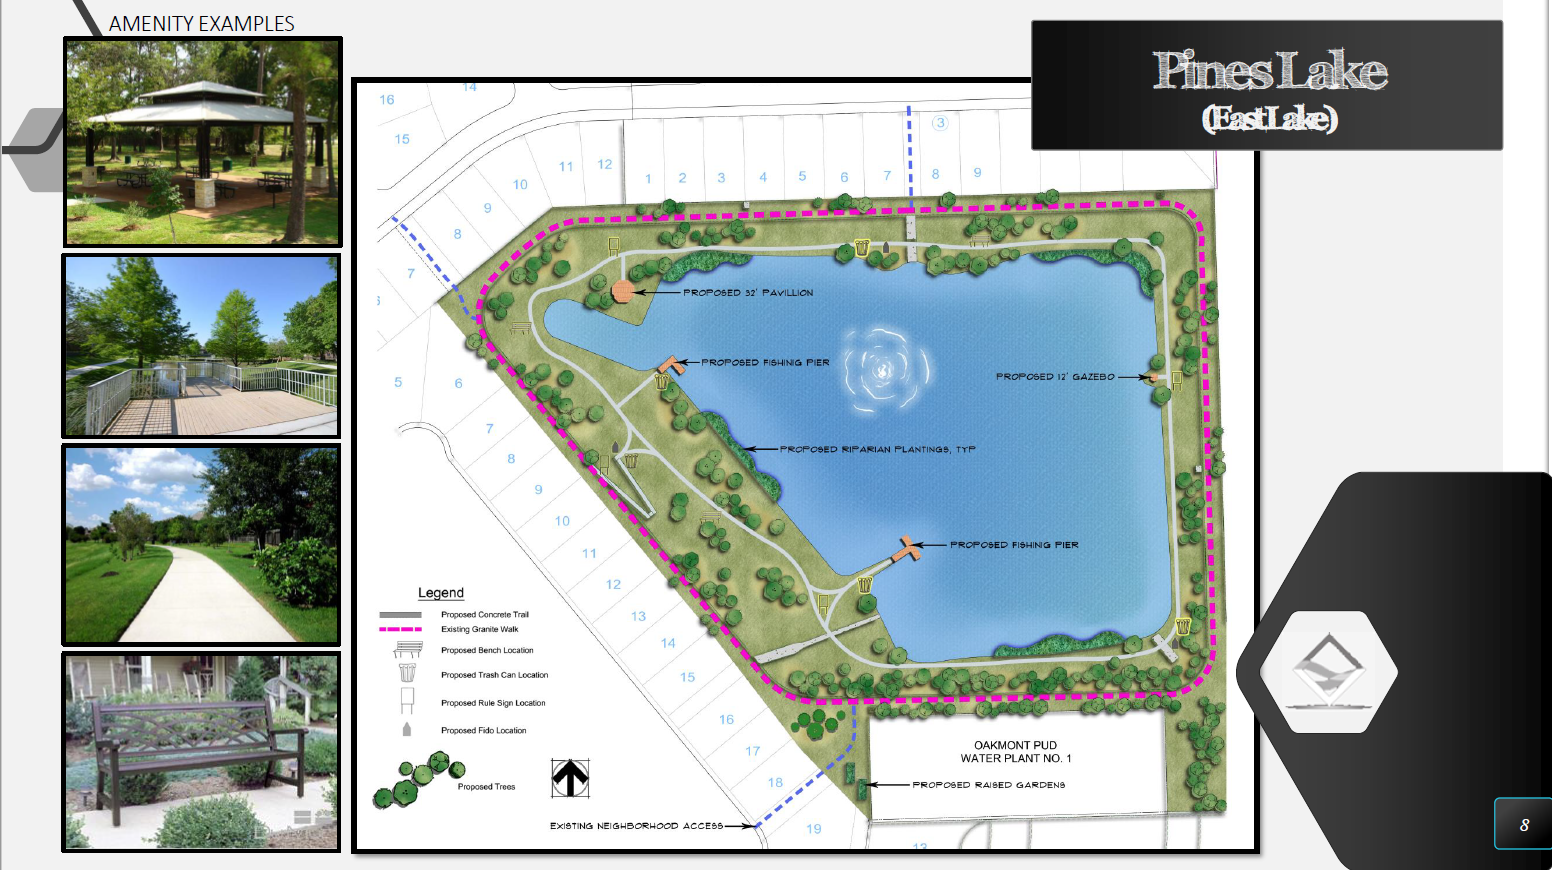 Pines Lake (East Lake) - Amenity Examples